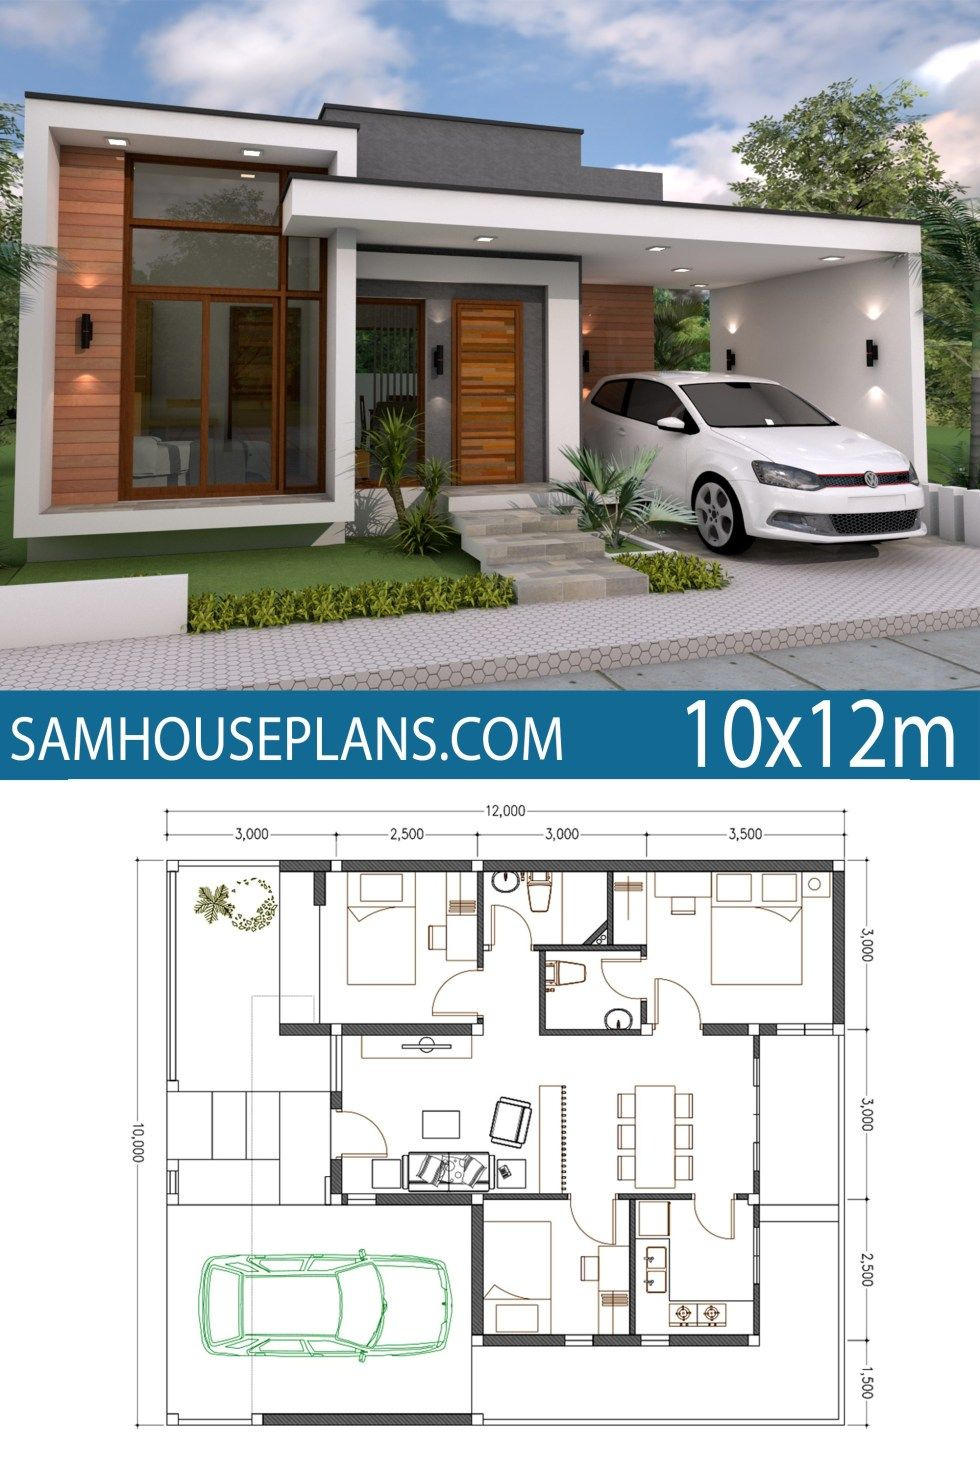 Home Design House Plans Fresh Home Plan 10x12m 3 Bedrooms In 2020